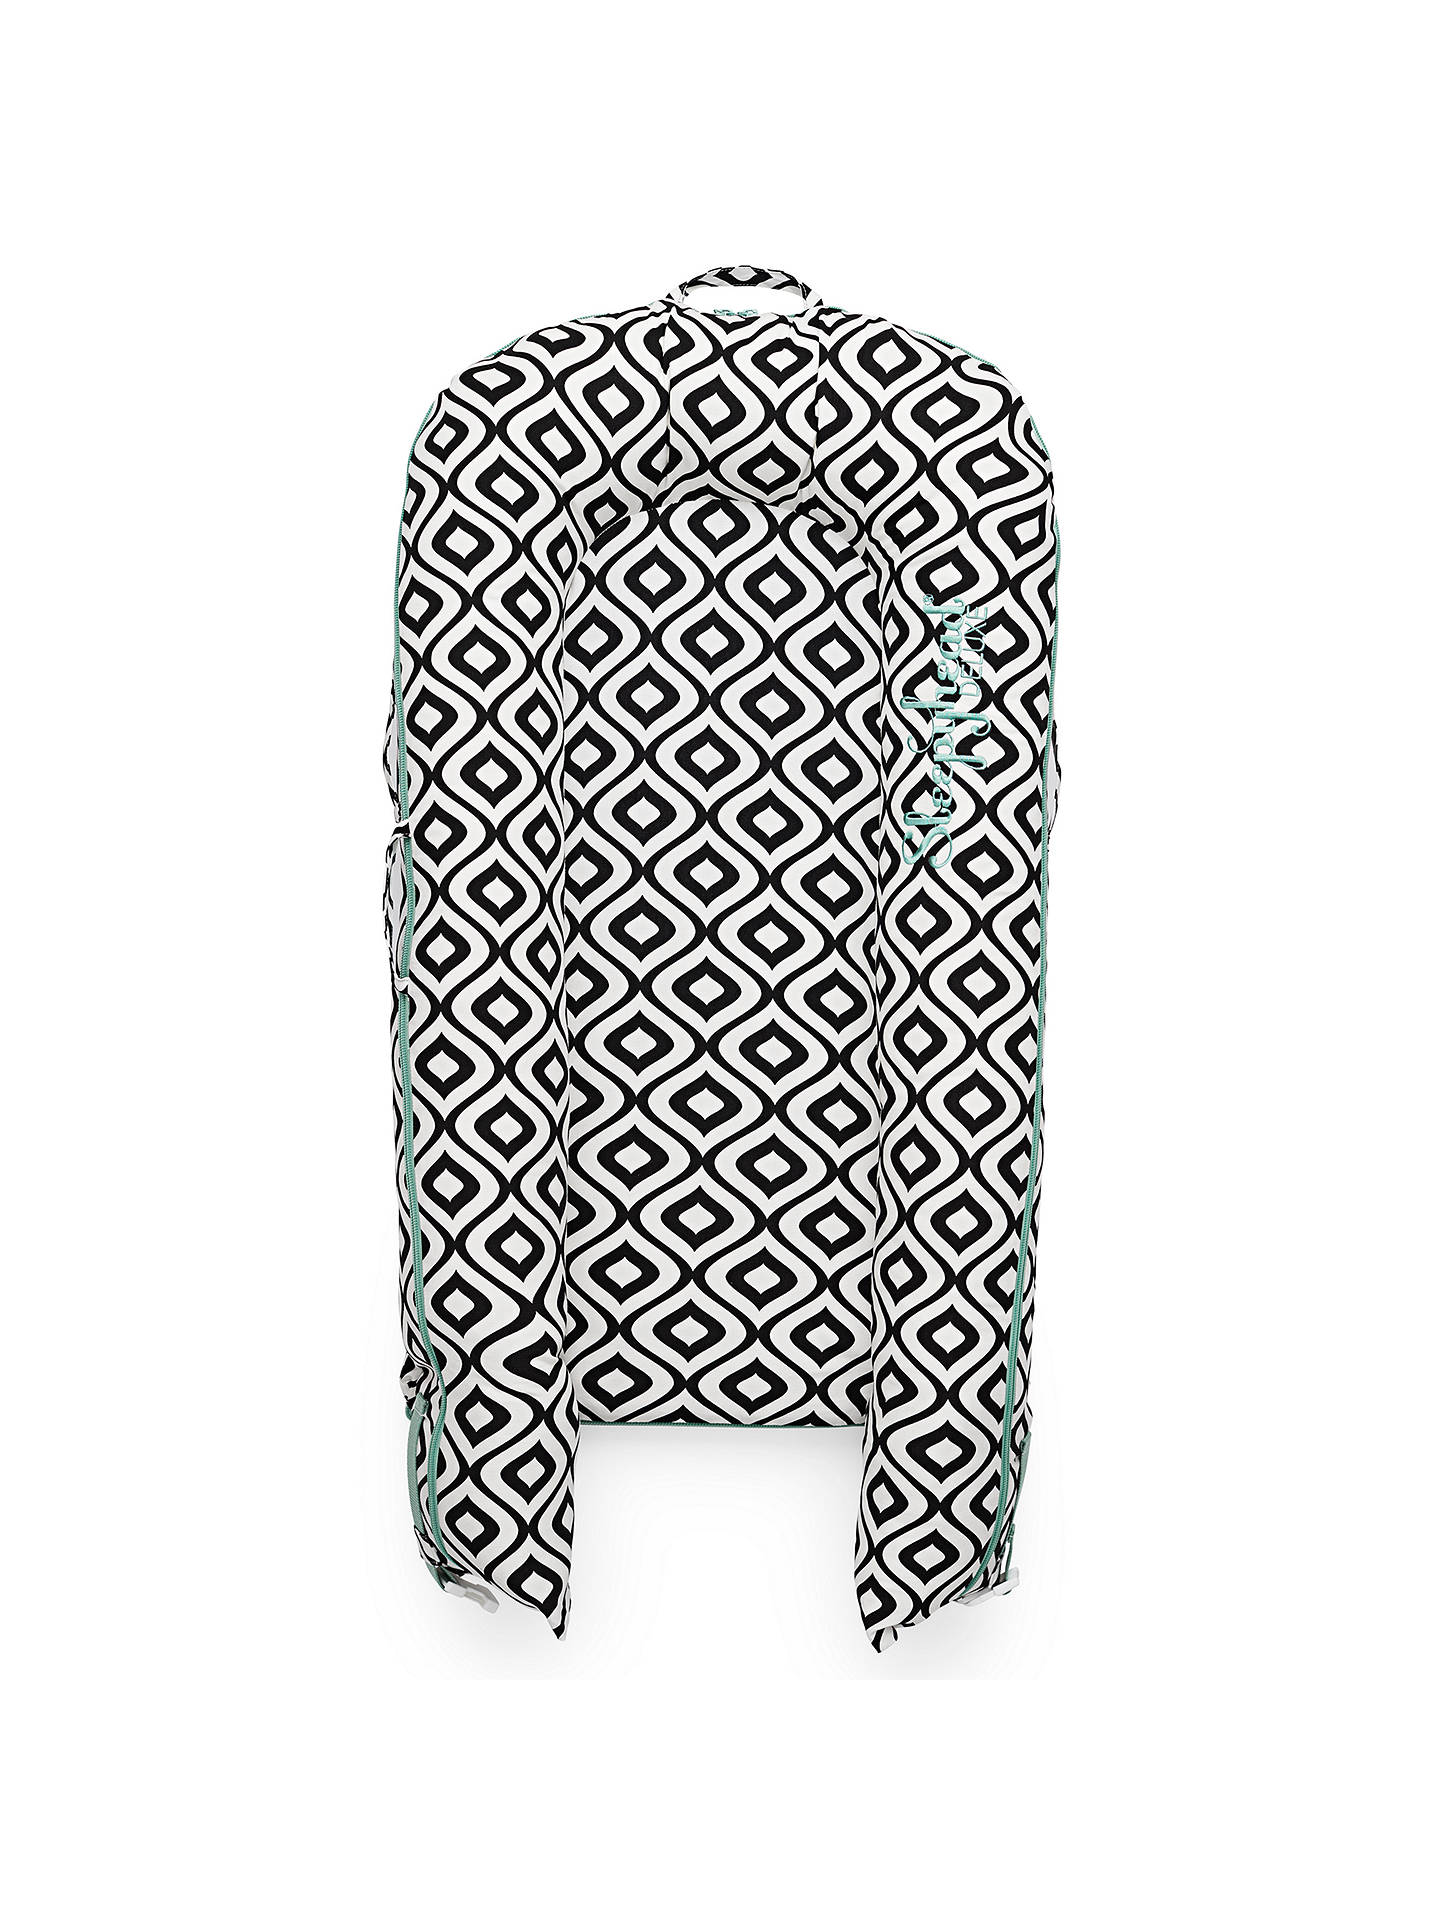 Buy Sleepyhead Deluxe+ Mod Baby Pod, 0-8 months Online at johnlewis.com